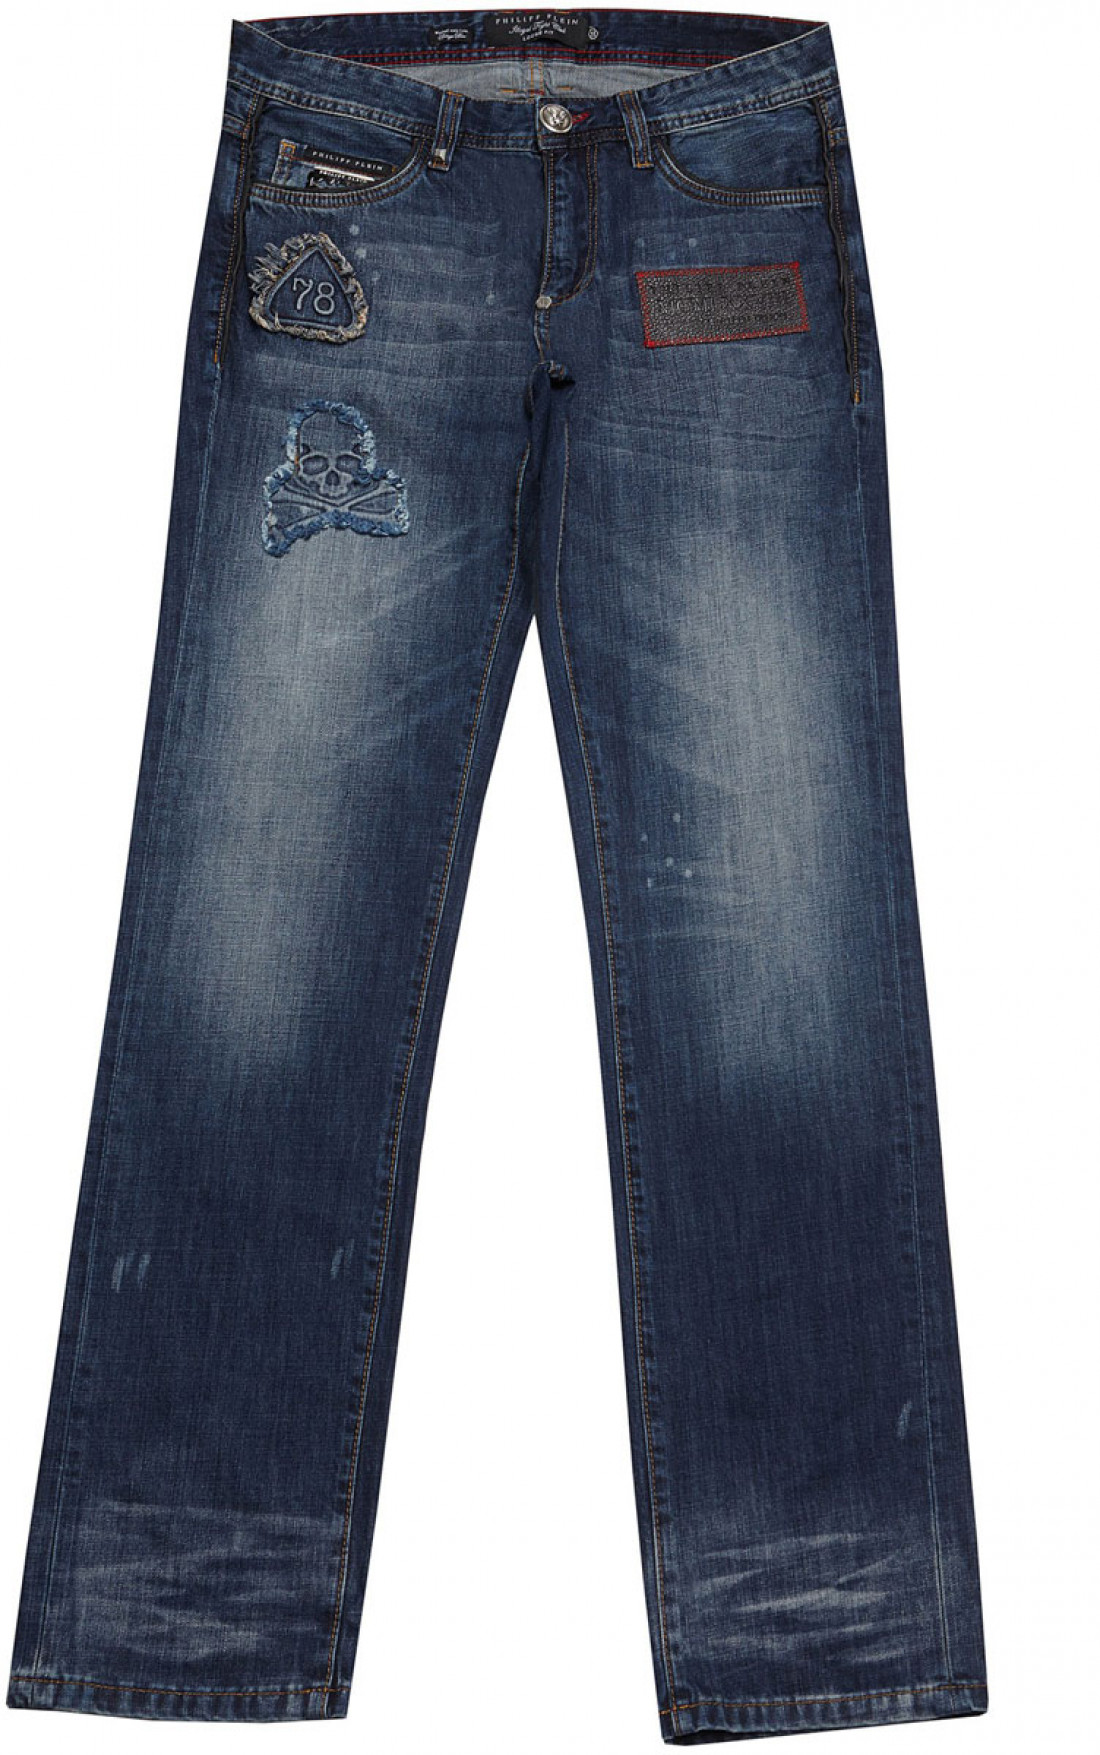 philipp plein 39 american skull 39 loose fit jeans blue mens jeans boudi fashion 98 new bond. Black Bedroom Furniture Sets. Home Design Ideas